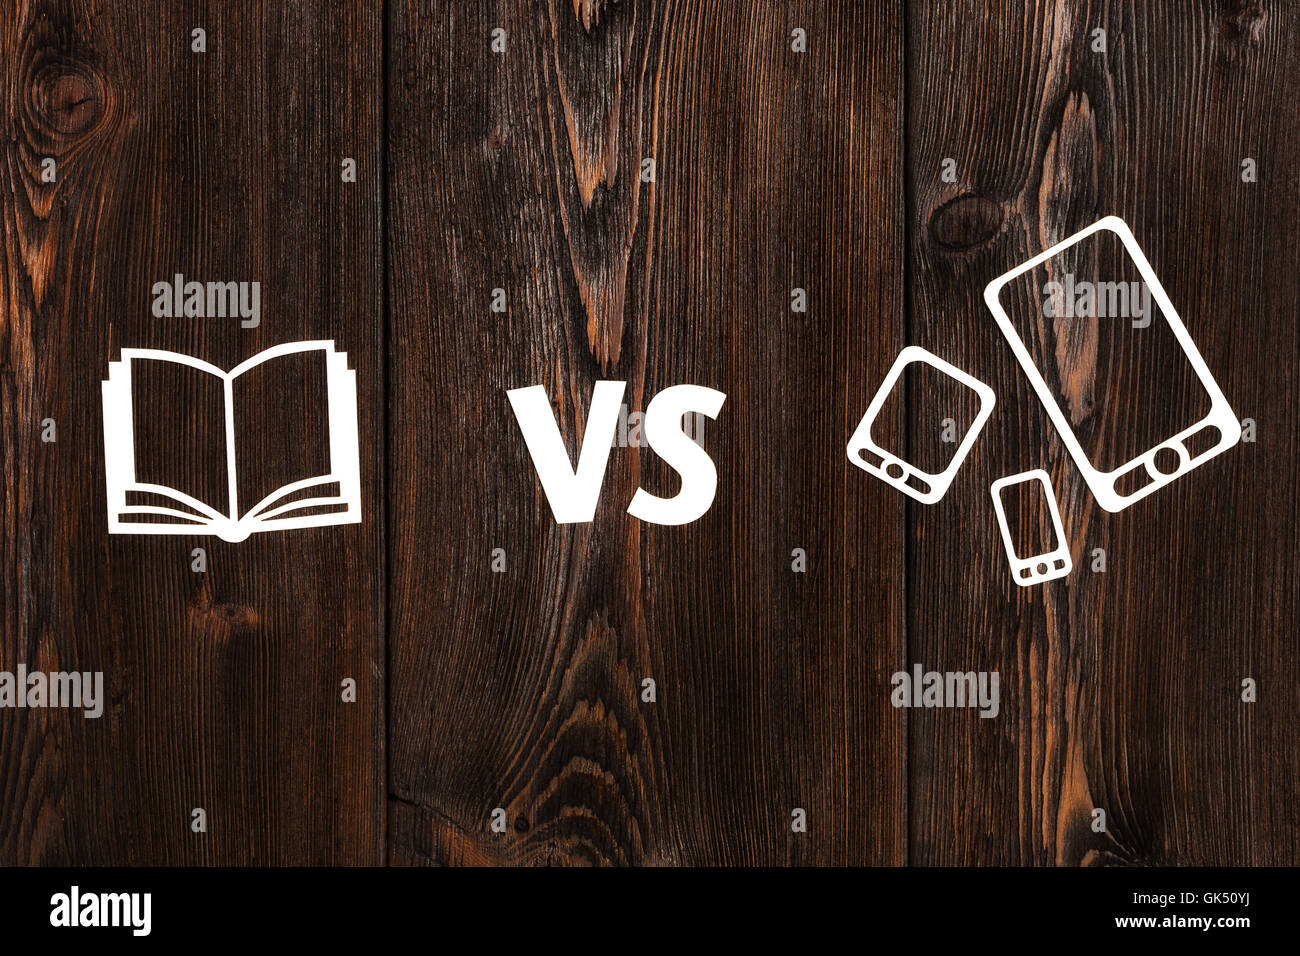 Book Vs Ebook Or Pad Abstract Paper Conceptual Image Stock